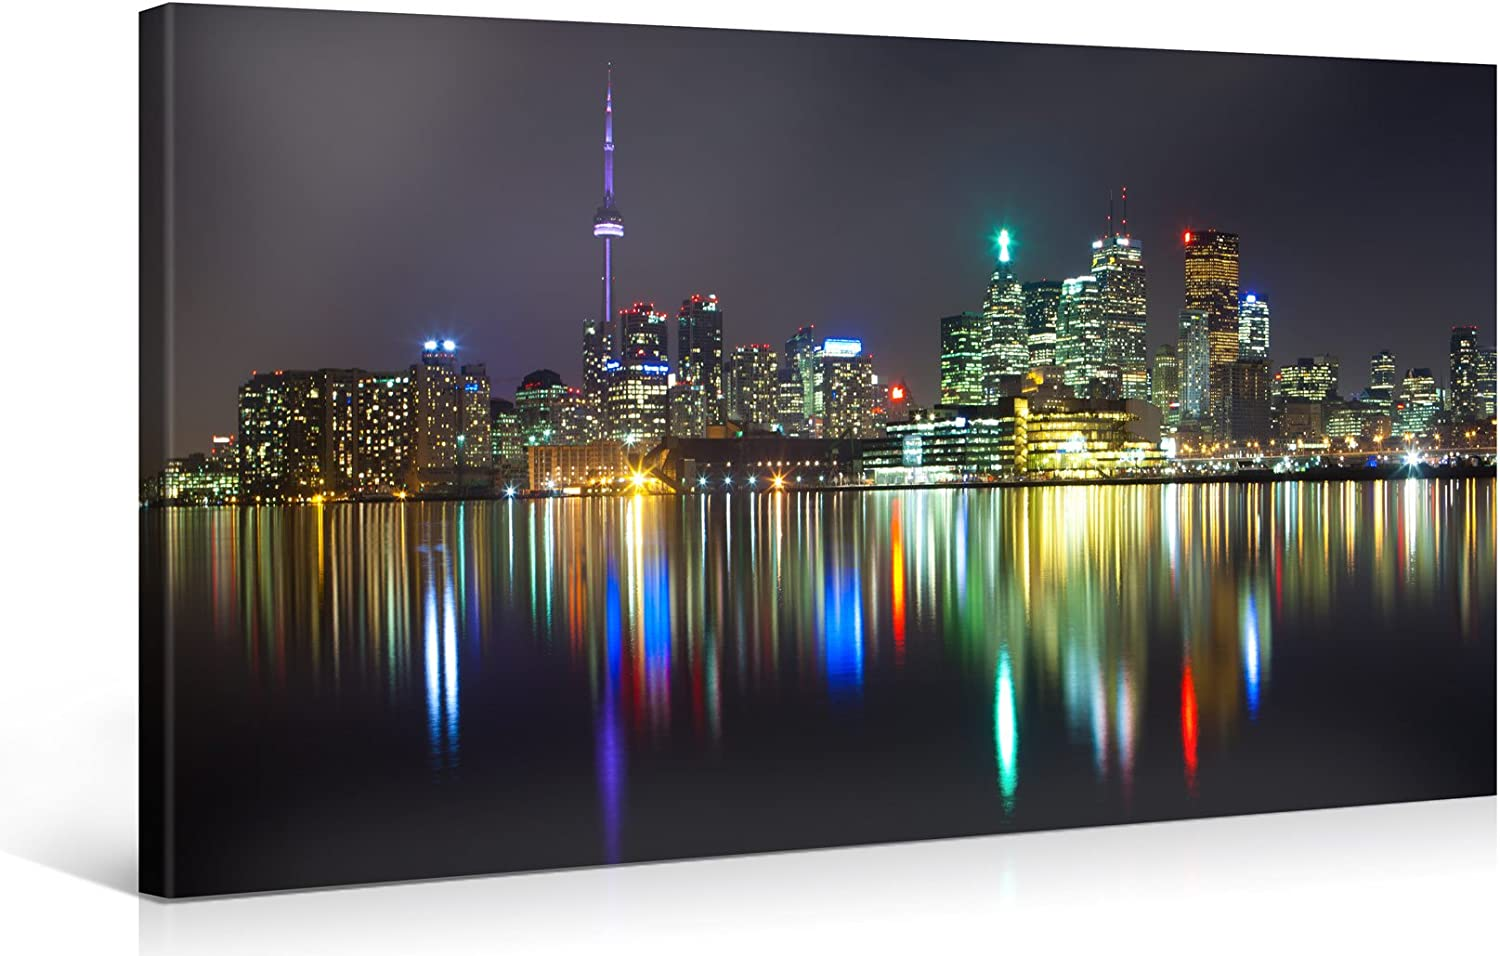 Amazon Com Large Canvas Print Wall Art Toronto City Panorama 40x20 Inch Cityscape Canvas Picture Stretched On A Wooden Frame Giclee Canvas Printing Hanging Wall Deco Picture E4709 Posters Prints